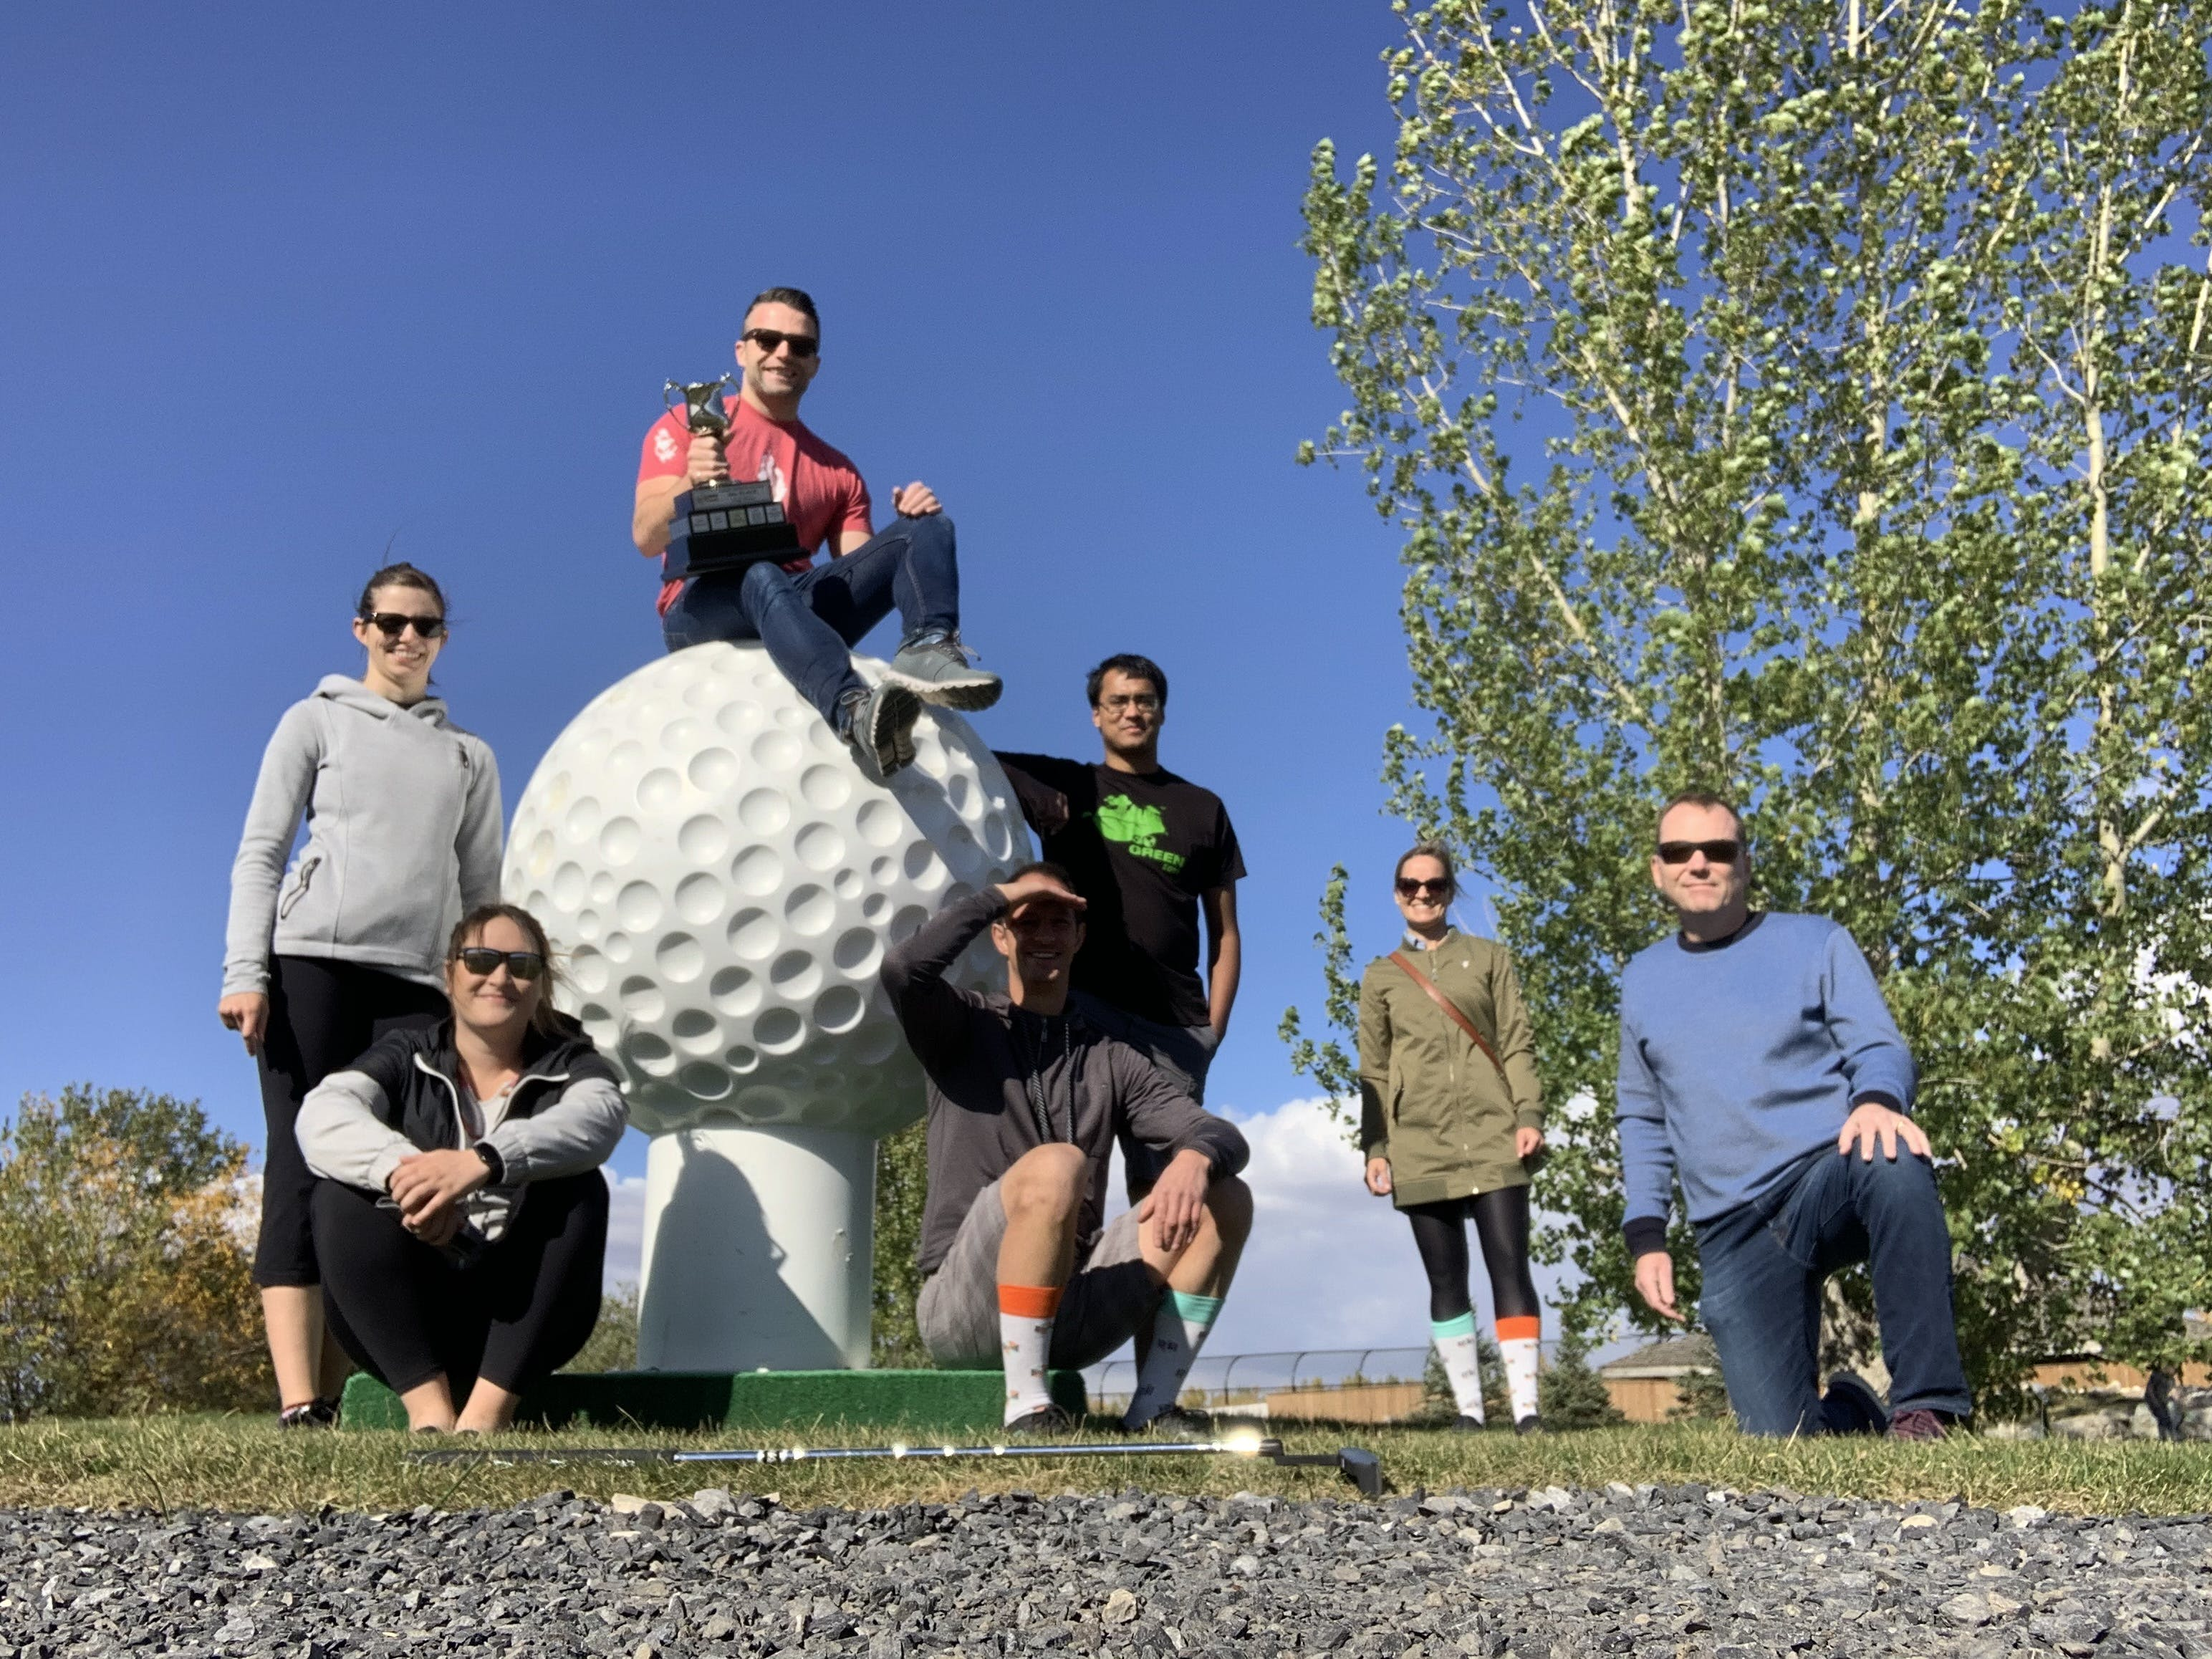 Group of people posing around giant golf ball